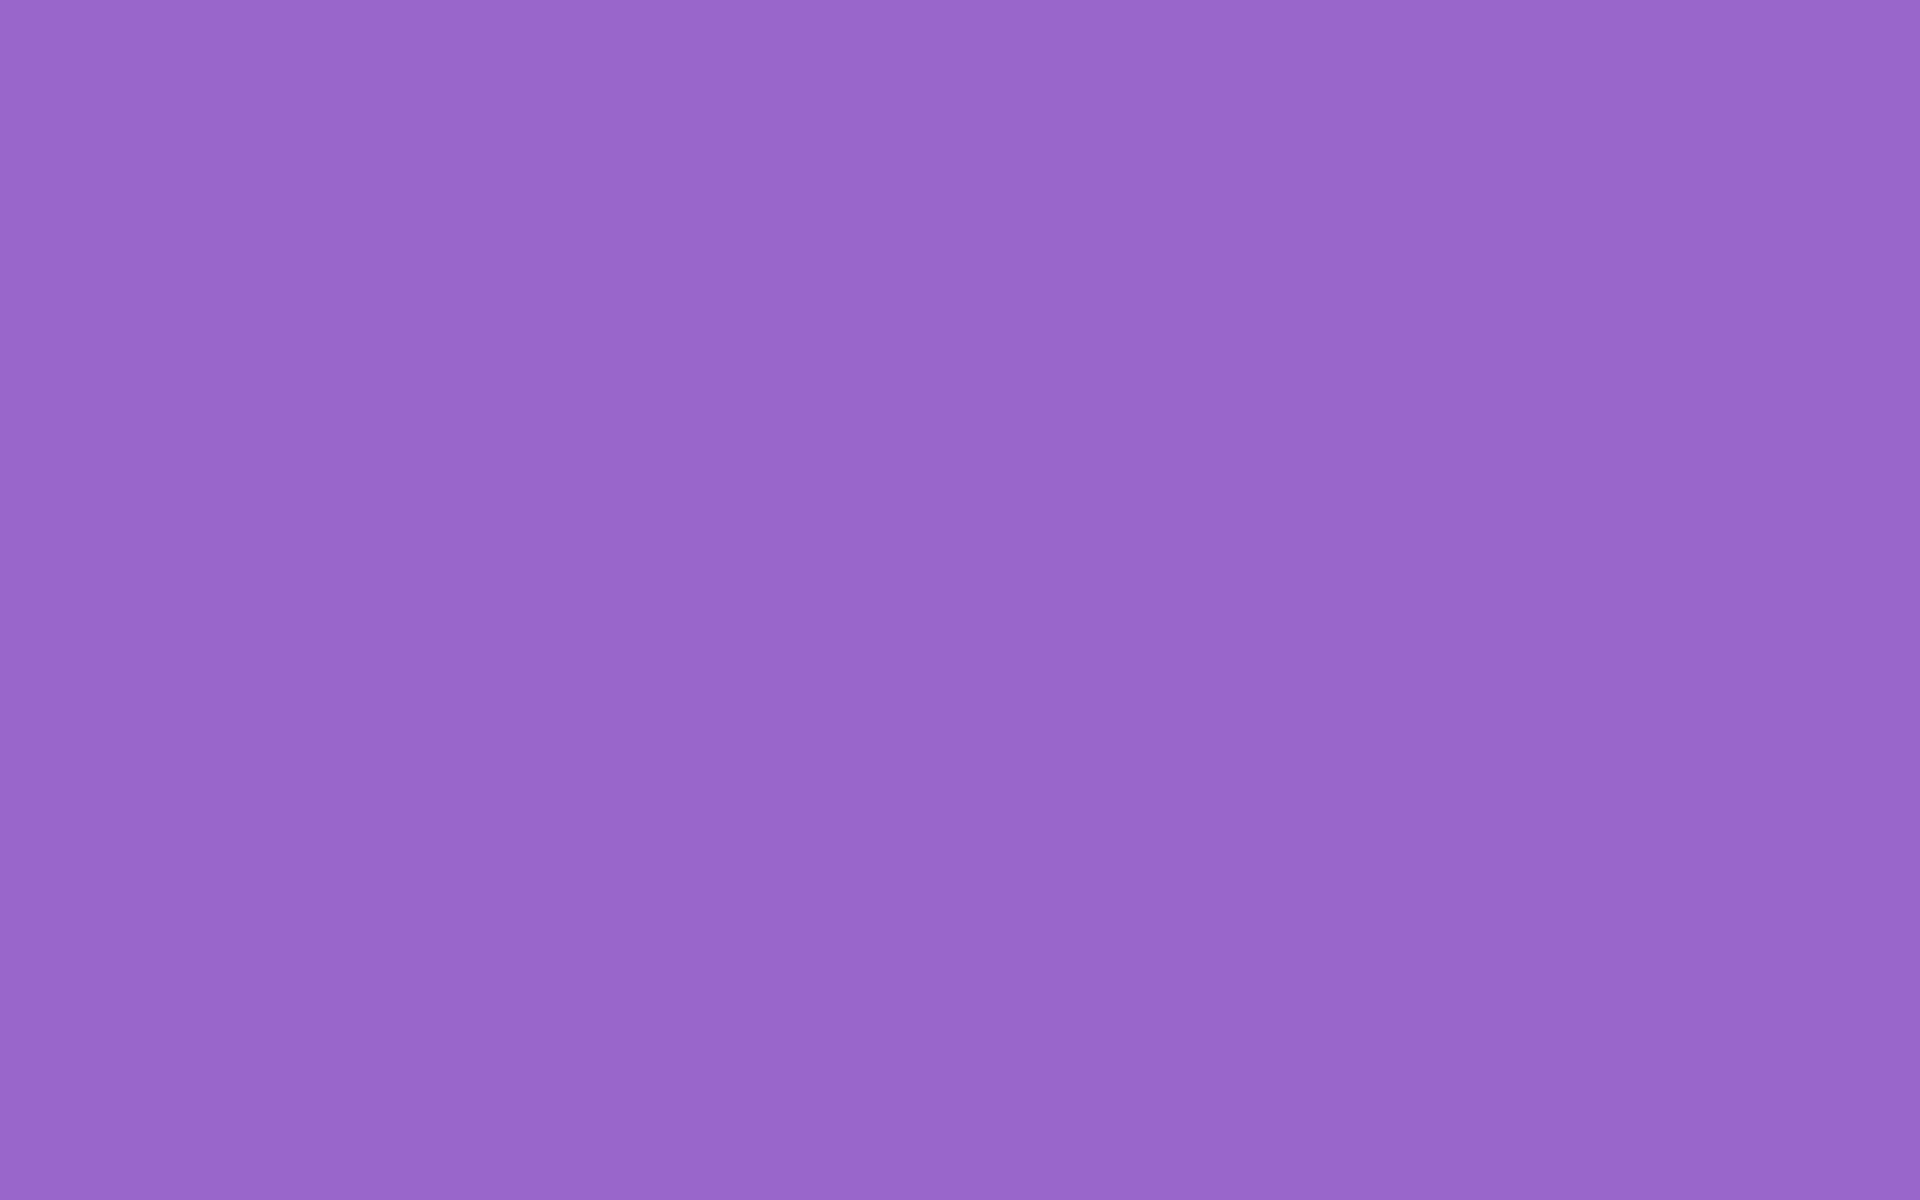 1920x1200 Amethyst Solid Color Background